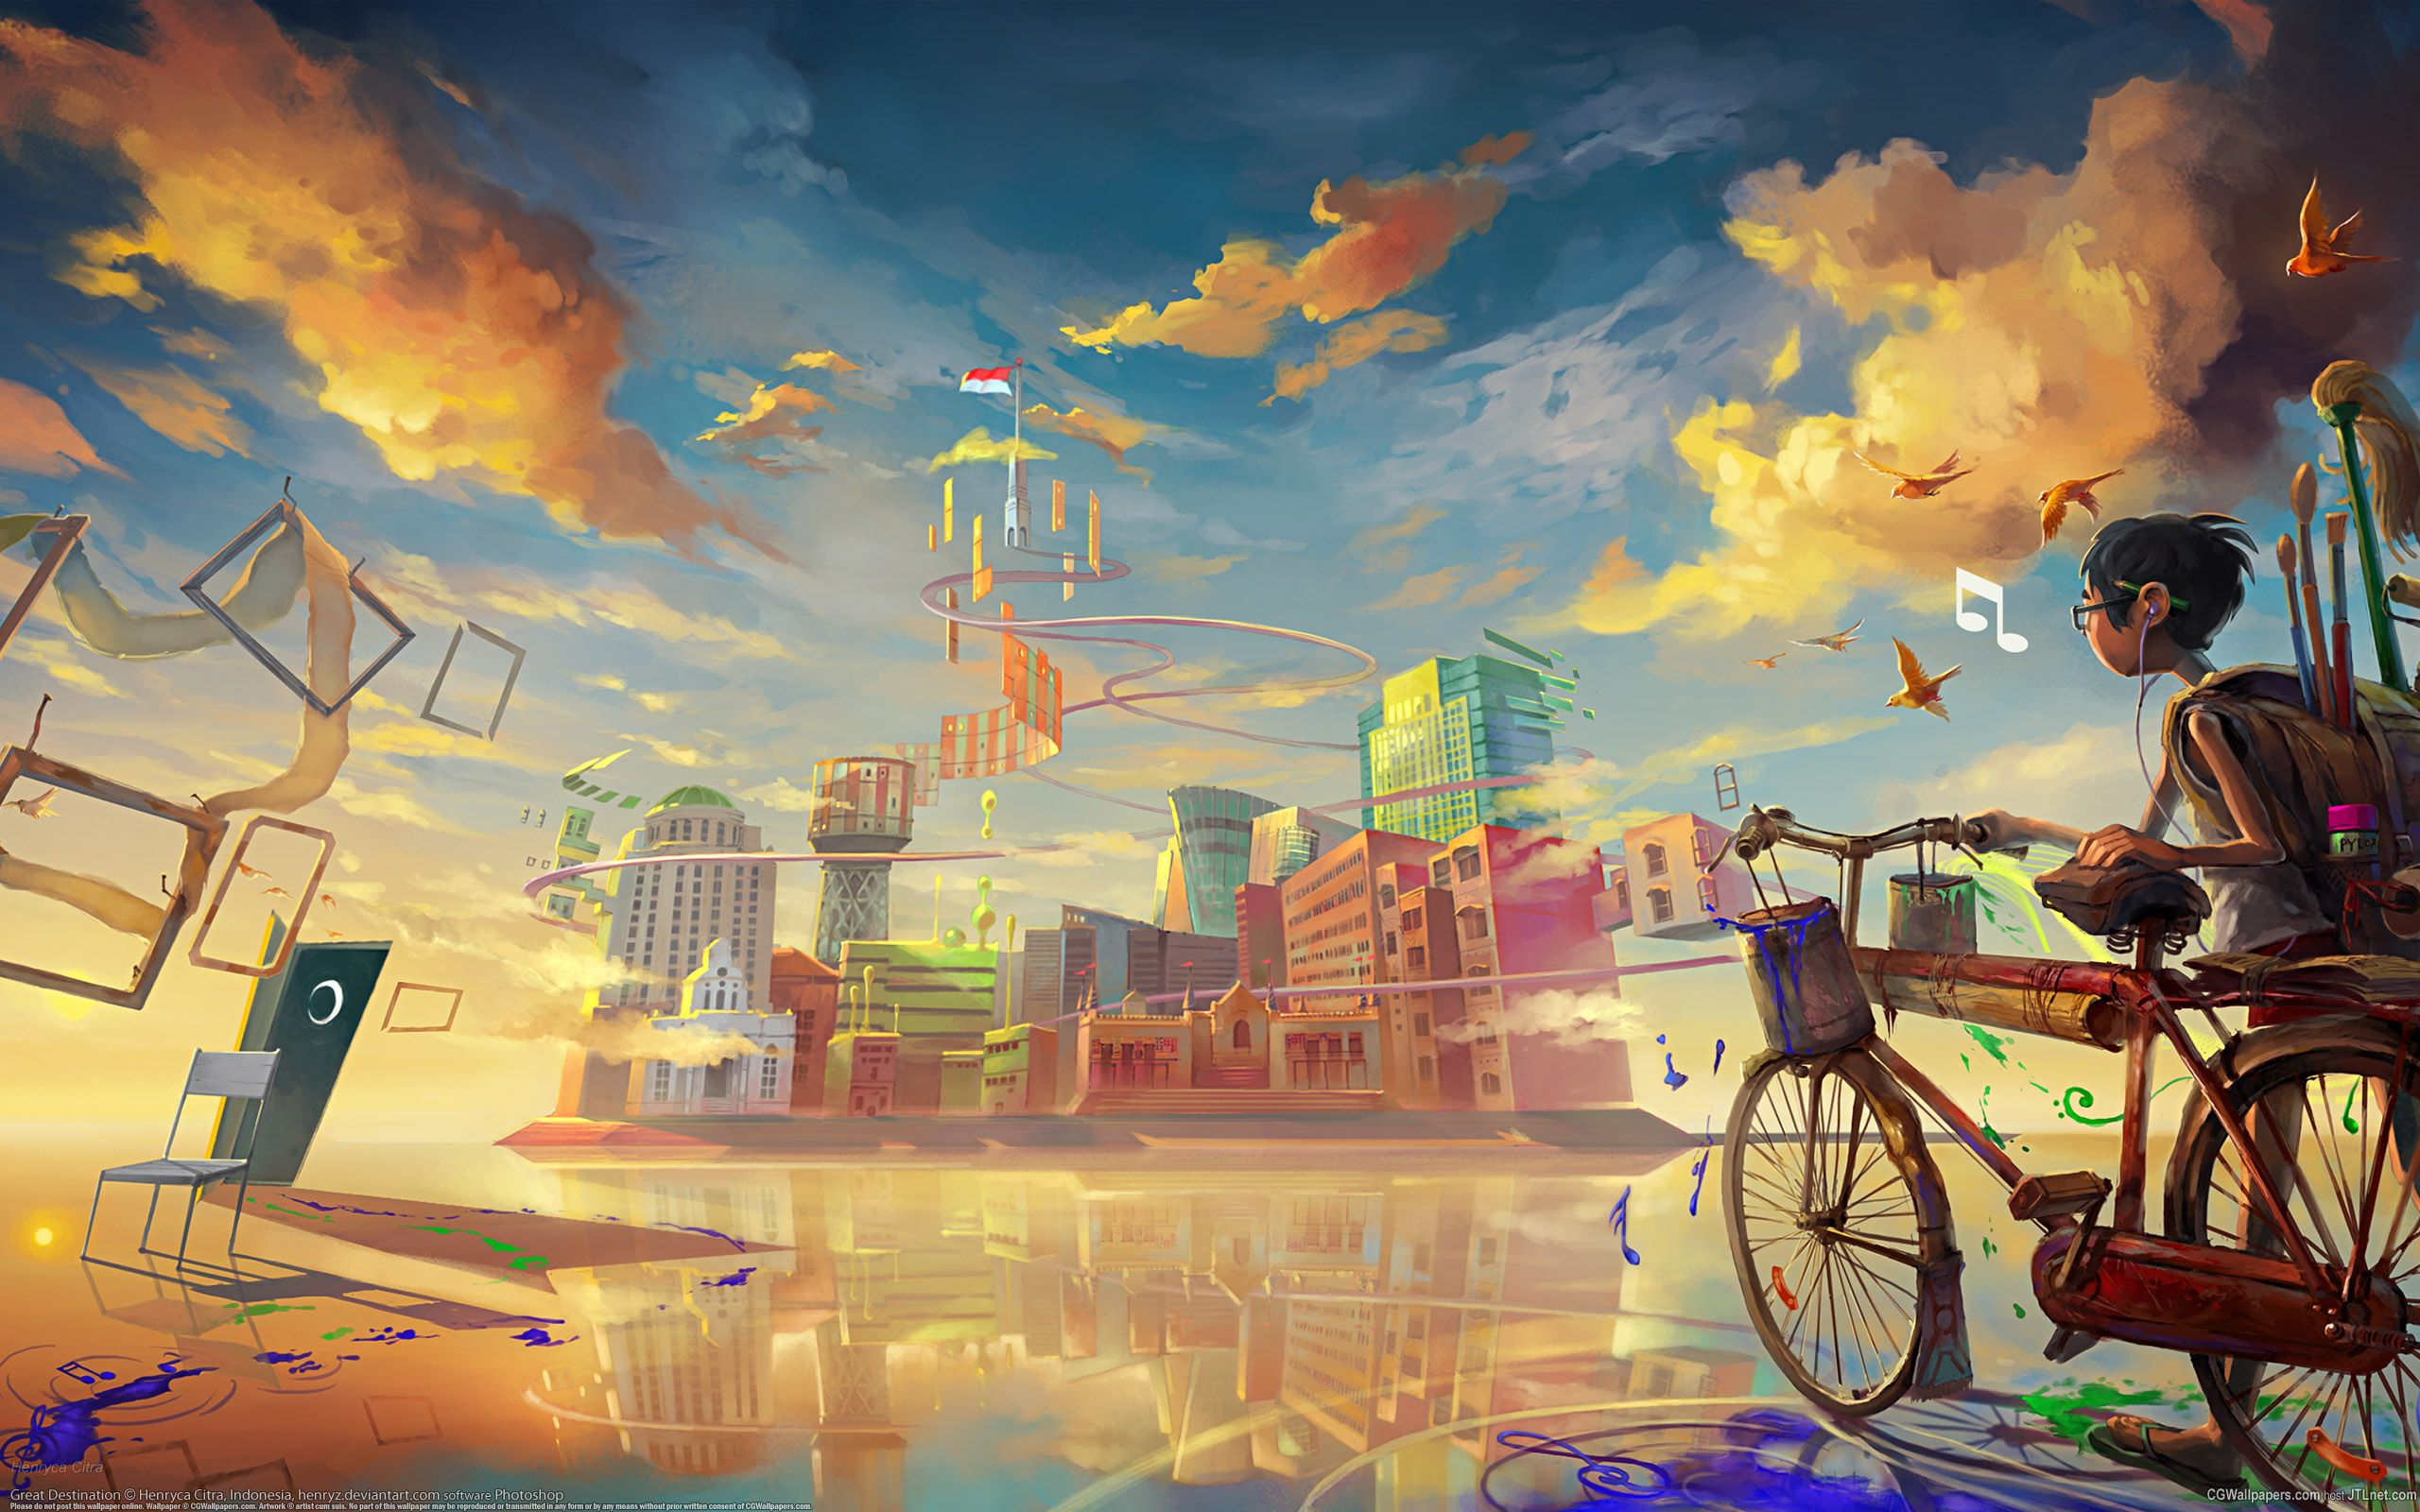 I Love Art Wallpapers Young Boy Outside The City 2560 1600 R Wallpapers Artistic Wallpaper Art Wallpaper Anime Wallpaper